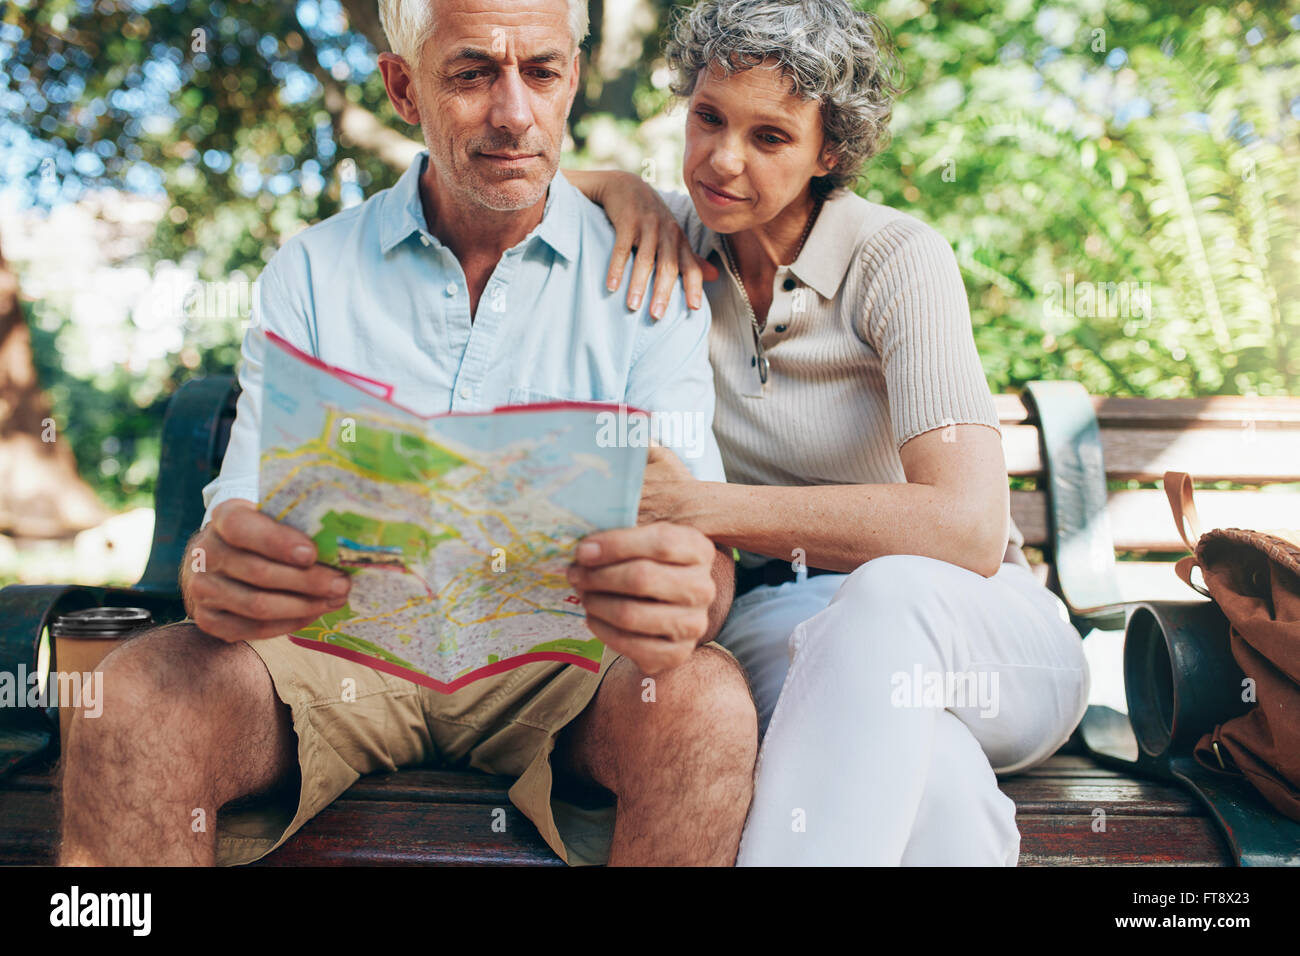 Senior tourist sitting on a park bench reading city map. Man and woman using city guide for finding their location. - Stock Image